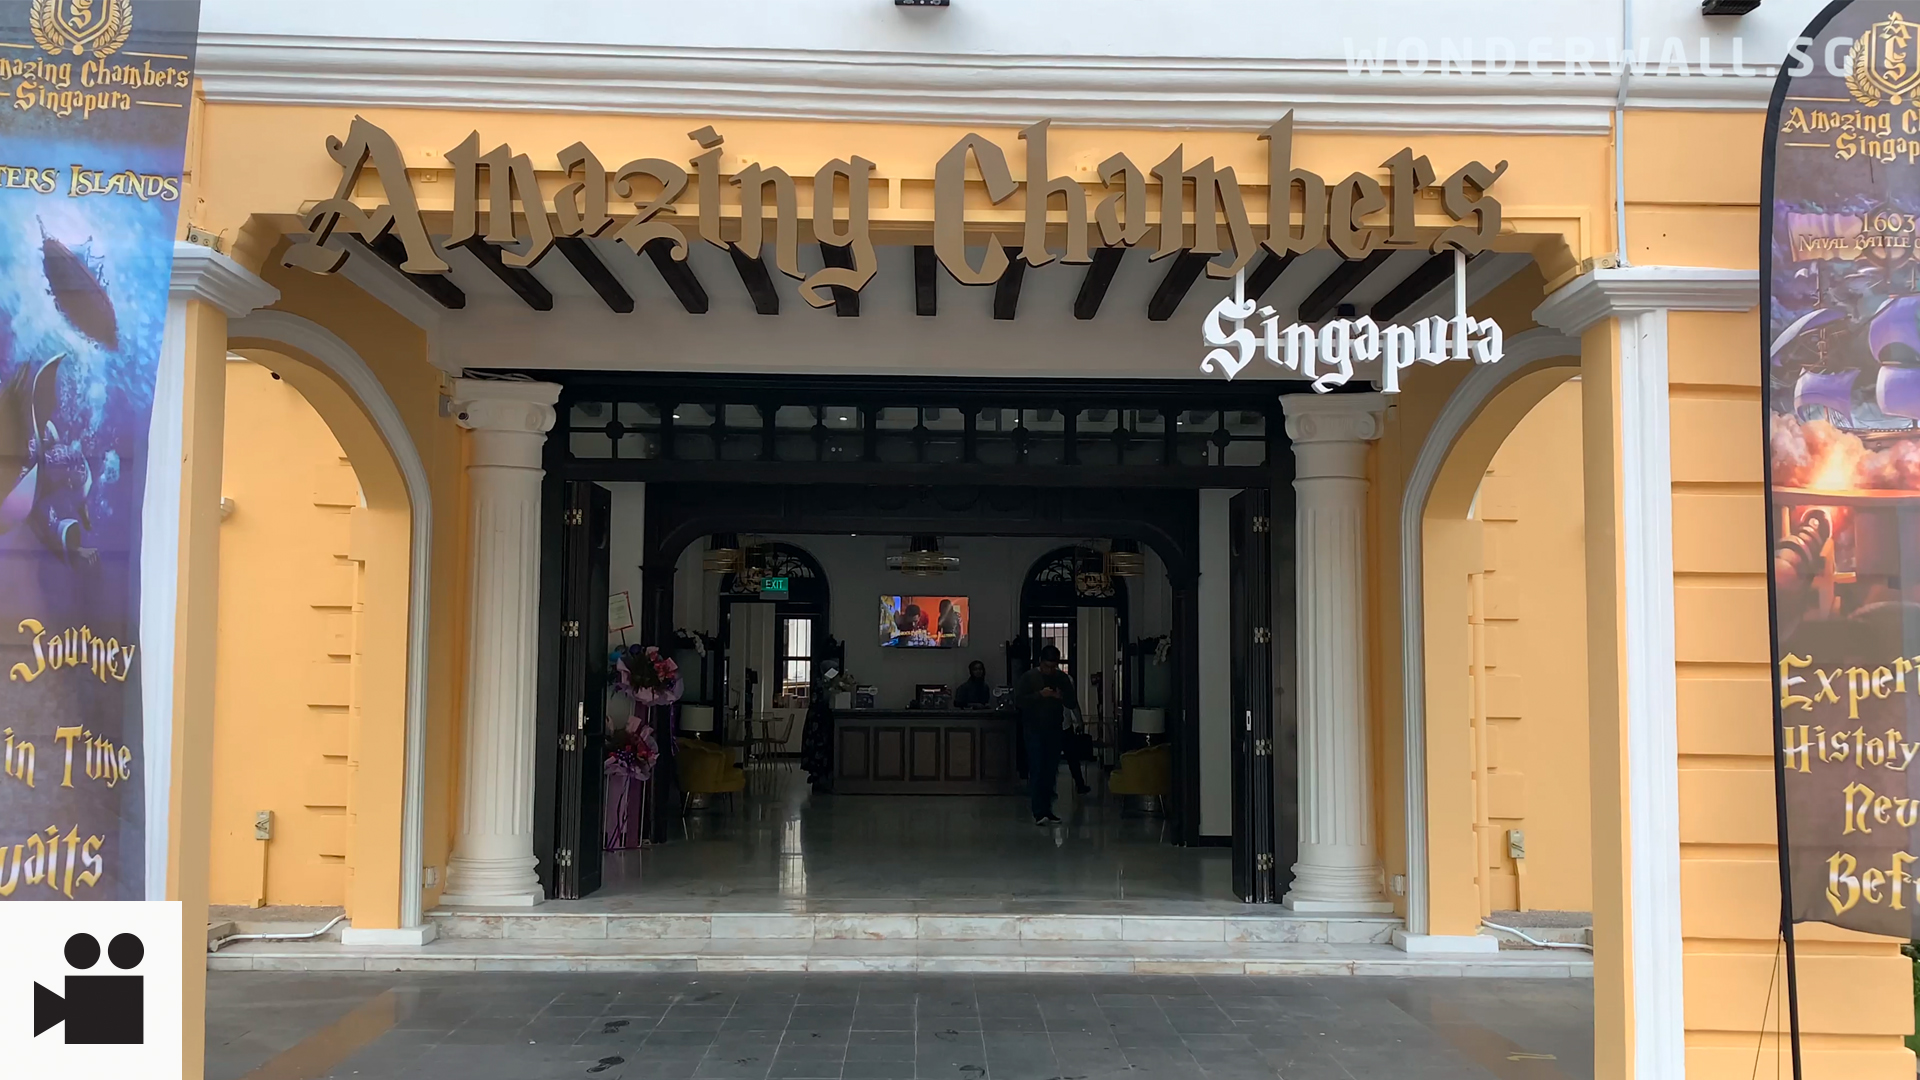 Discovery Of The Week: Amazing Chambers Singapura